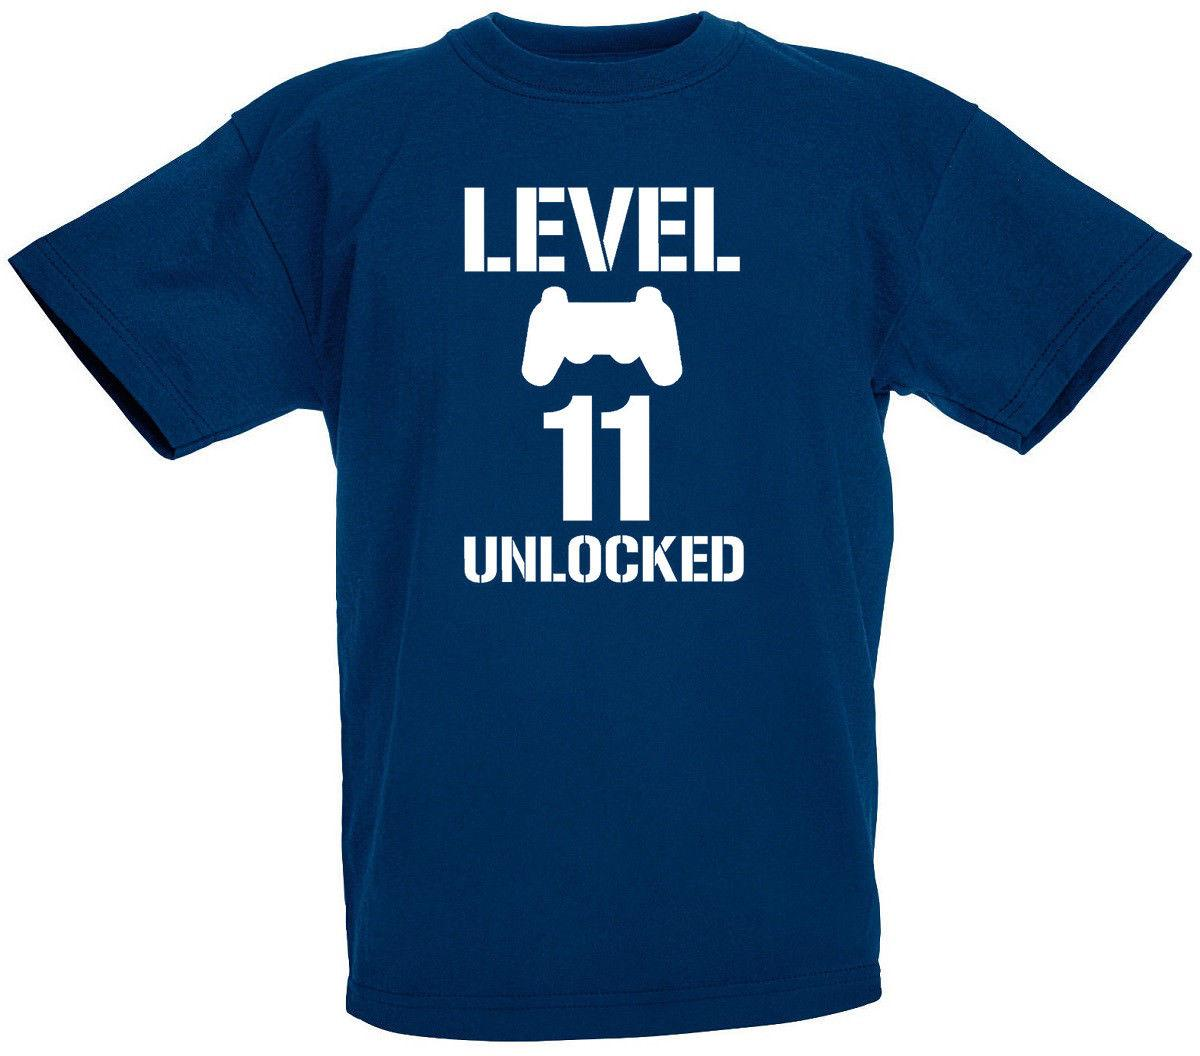 Level 11 Unlocked 11th Birthday Gifts Present Gift T Shirt For Year Old Boys Funny Unisex Tshirt Ridiculous Best Shirts Sites From Stylemixxuk